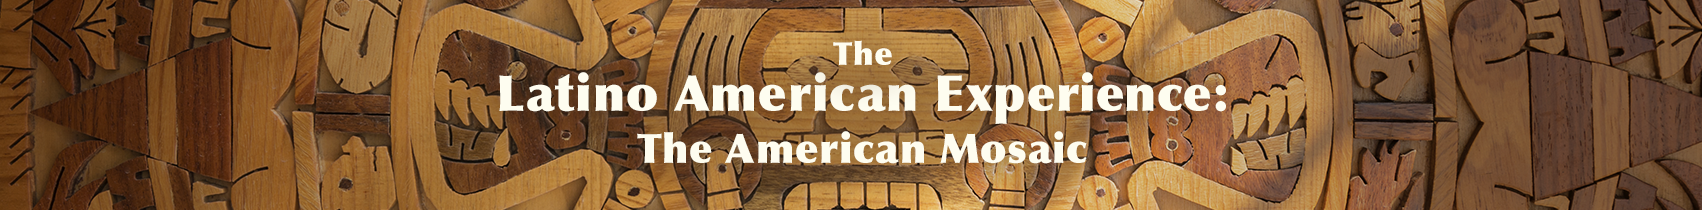 ABC-CLIO Solutions - The American Mosaic: The Latino American Experience